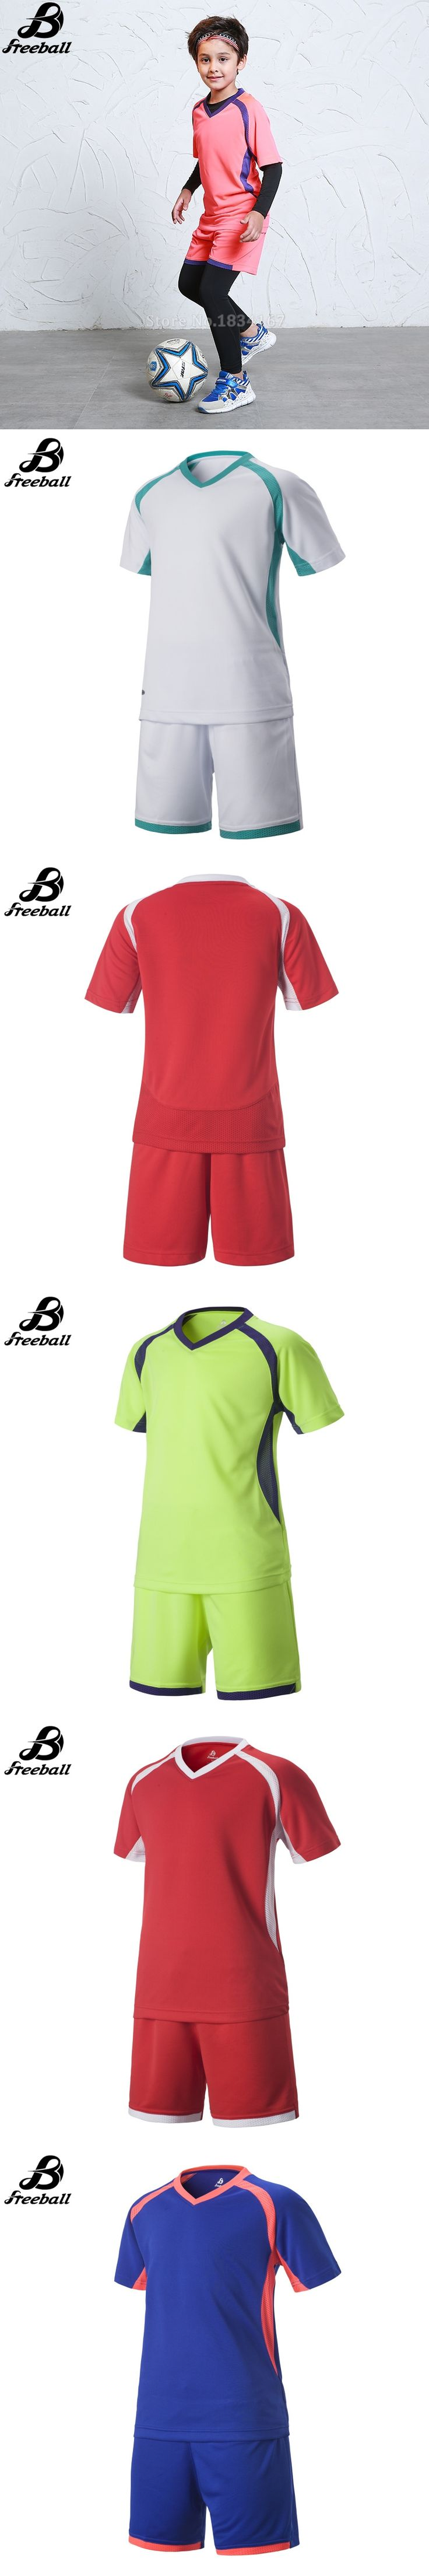 2016/17 boys football uniforms thai quality soccer jerseys for kids soccer sets kits survetement football 2017 kids new arrival